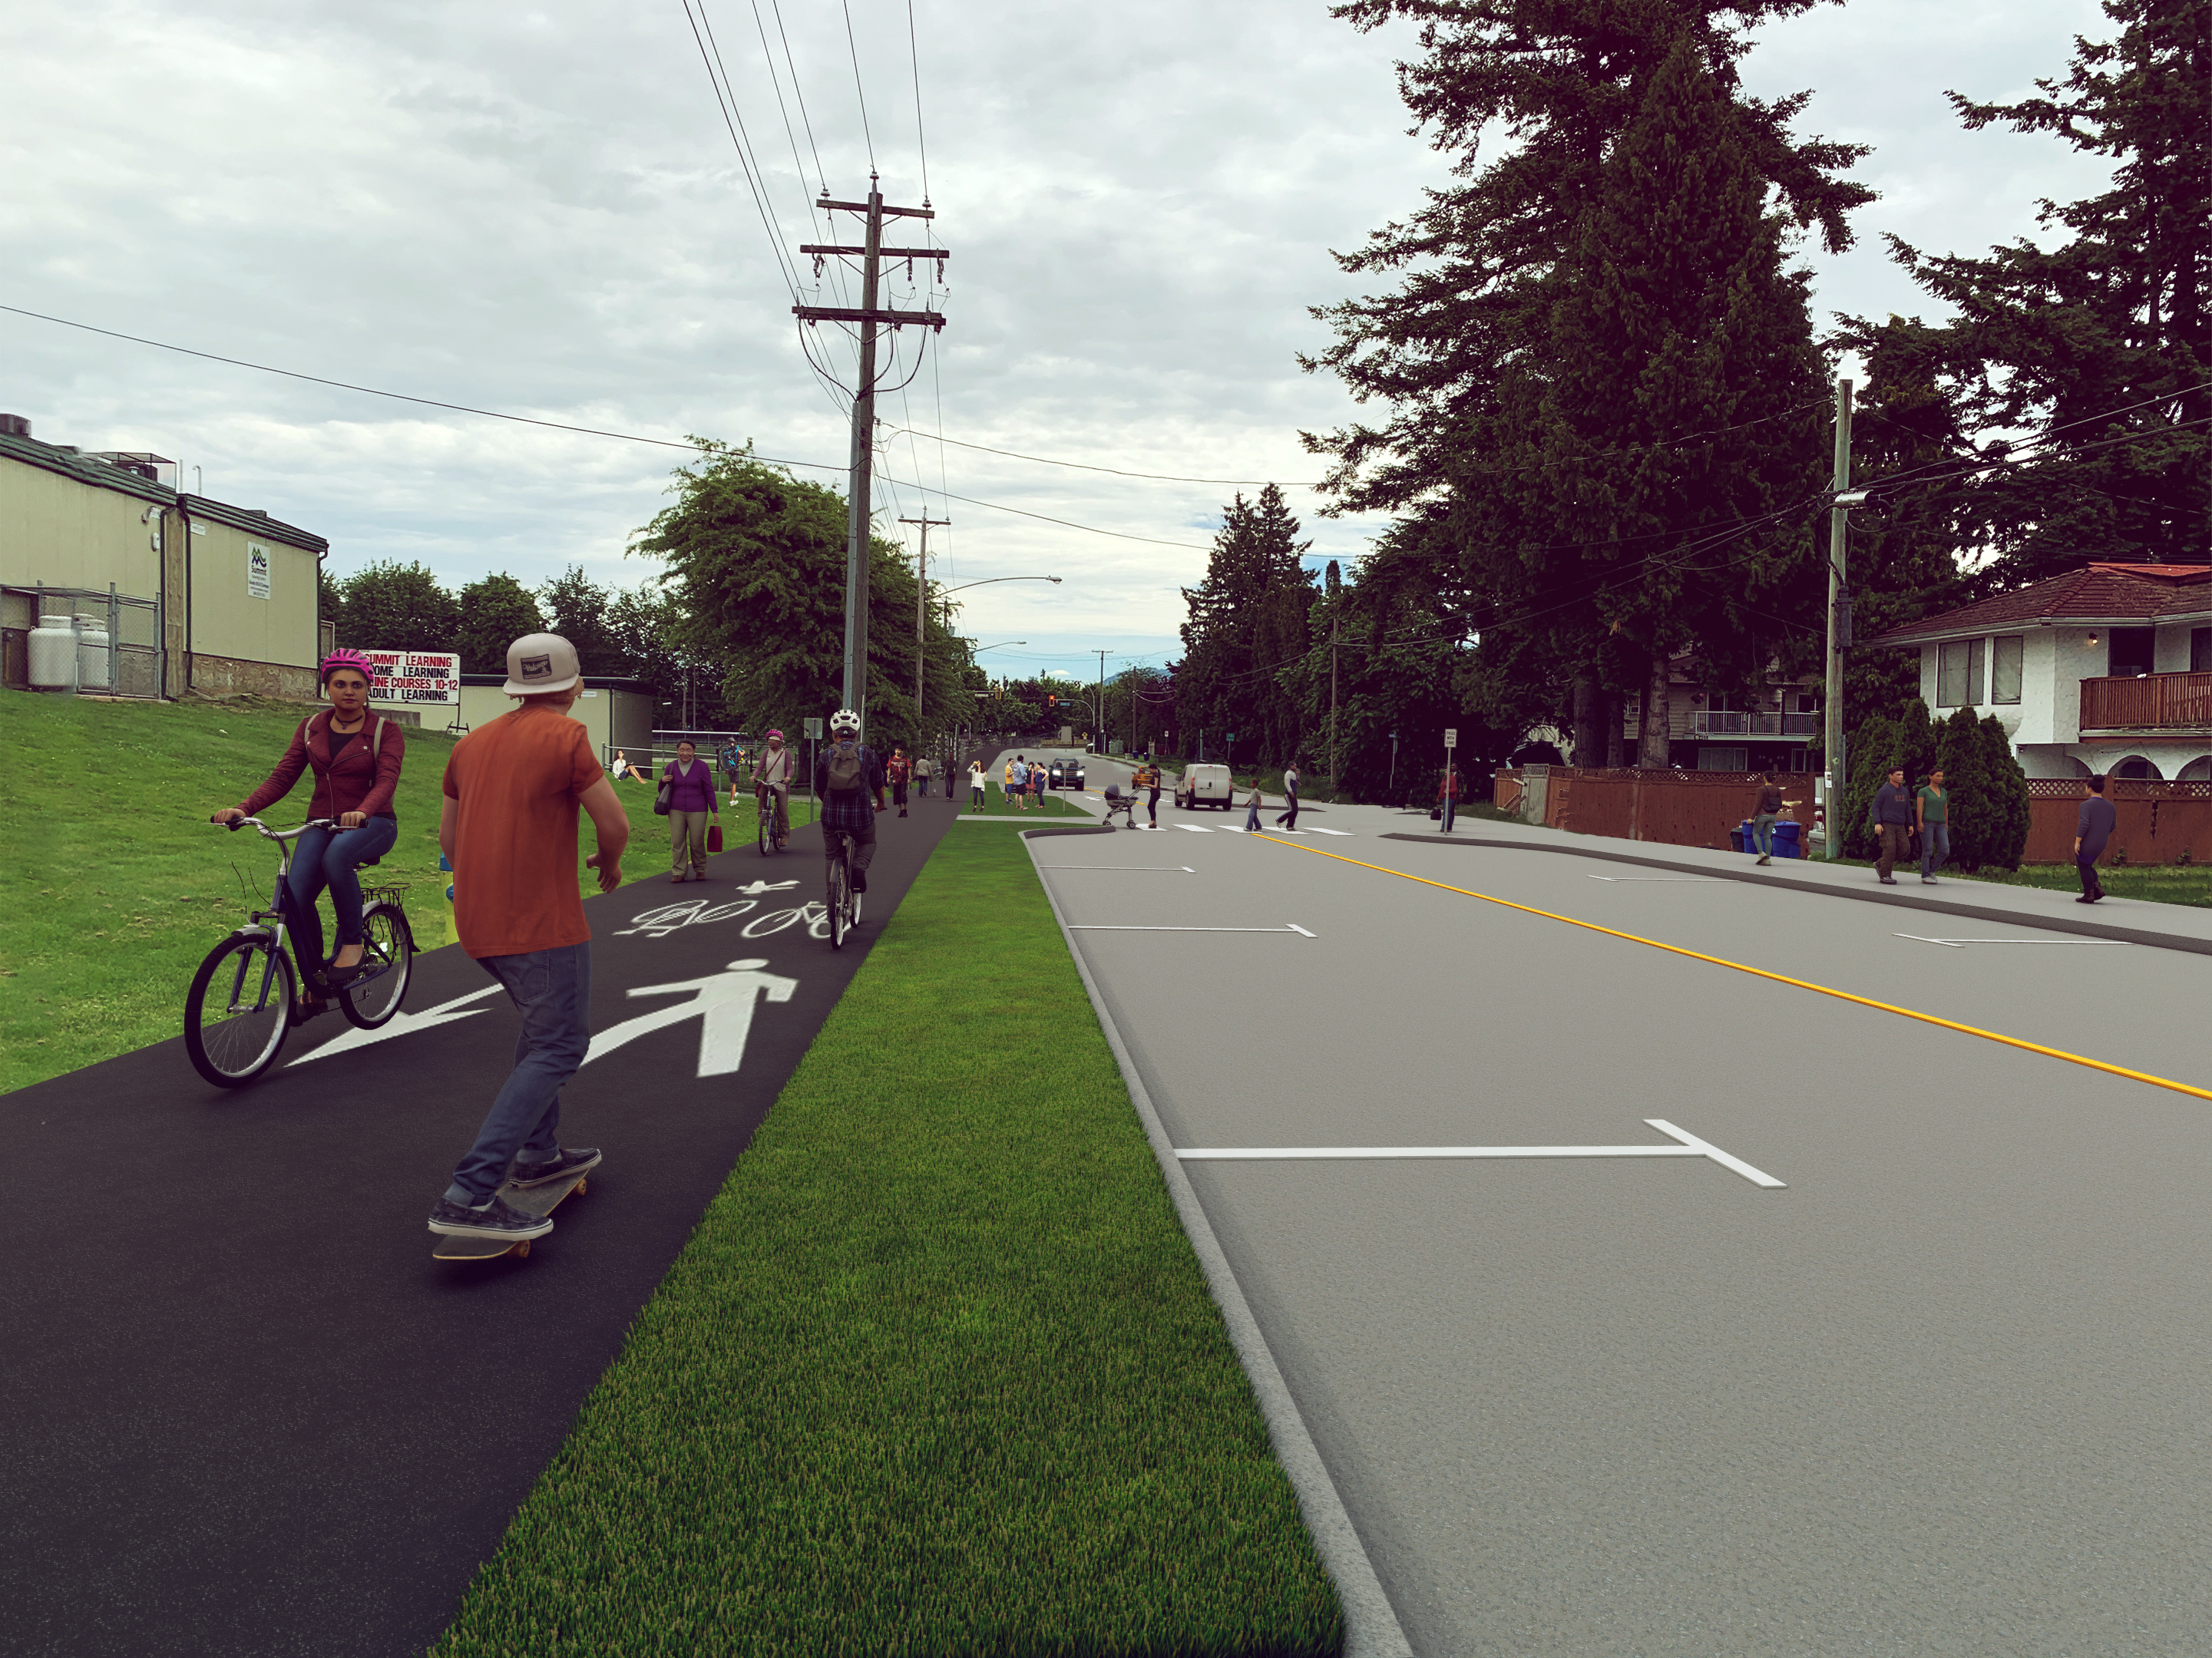 Image of option 3: Hybrid multi-use pathway and two-way protected bicycle lane